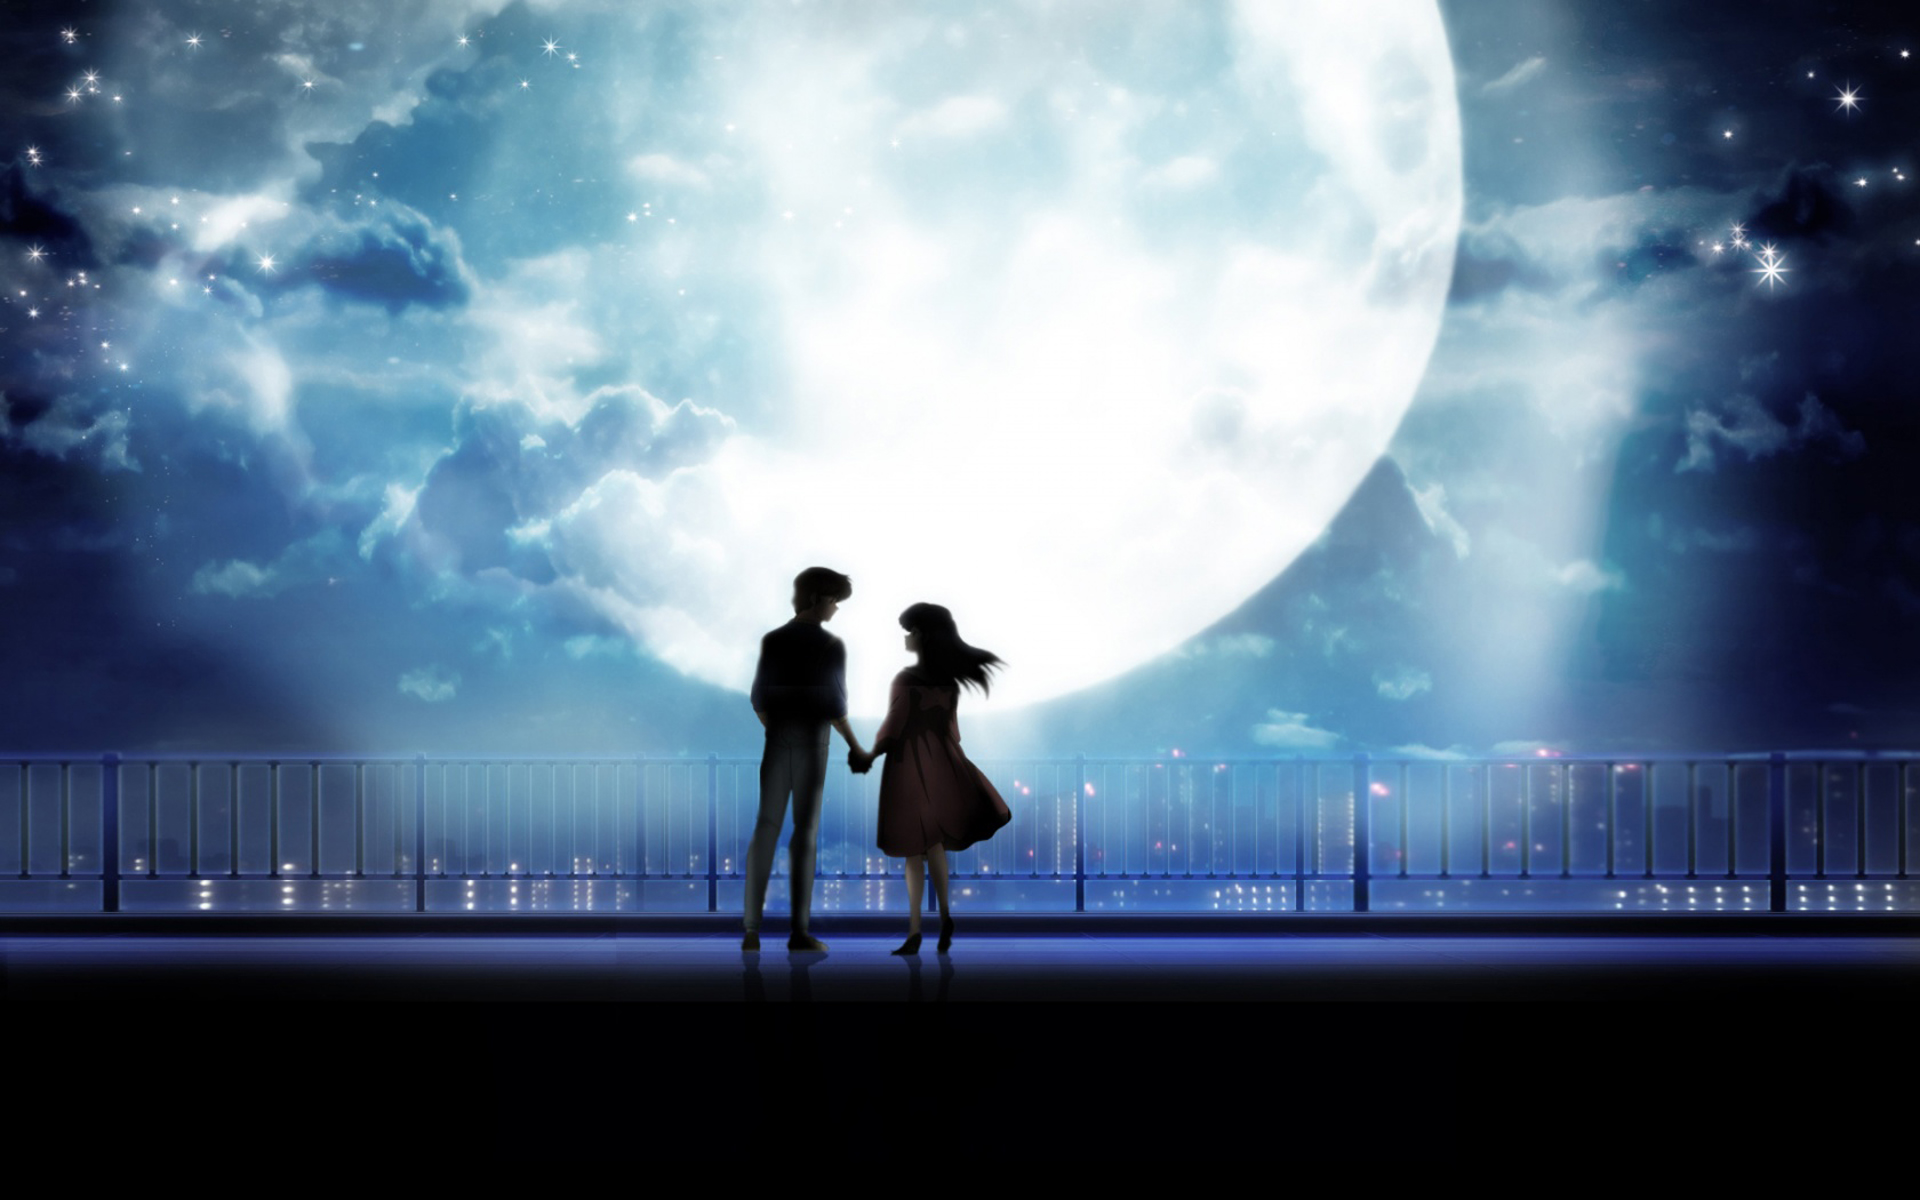 Wallpaper Boy And Girl Love Anime Art Anime Couple Holding Hands Moonlight Desktop